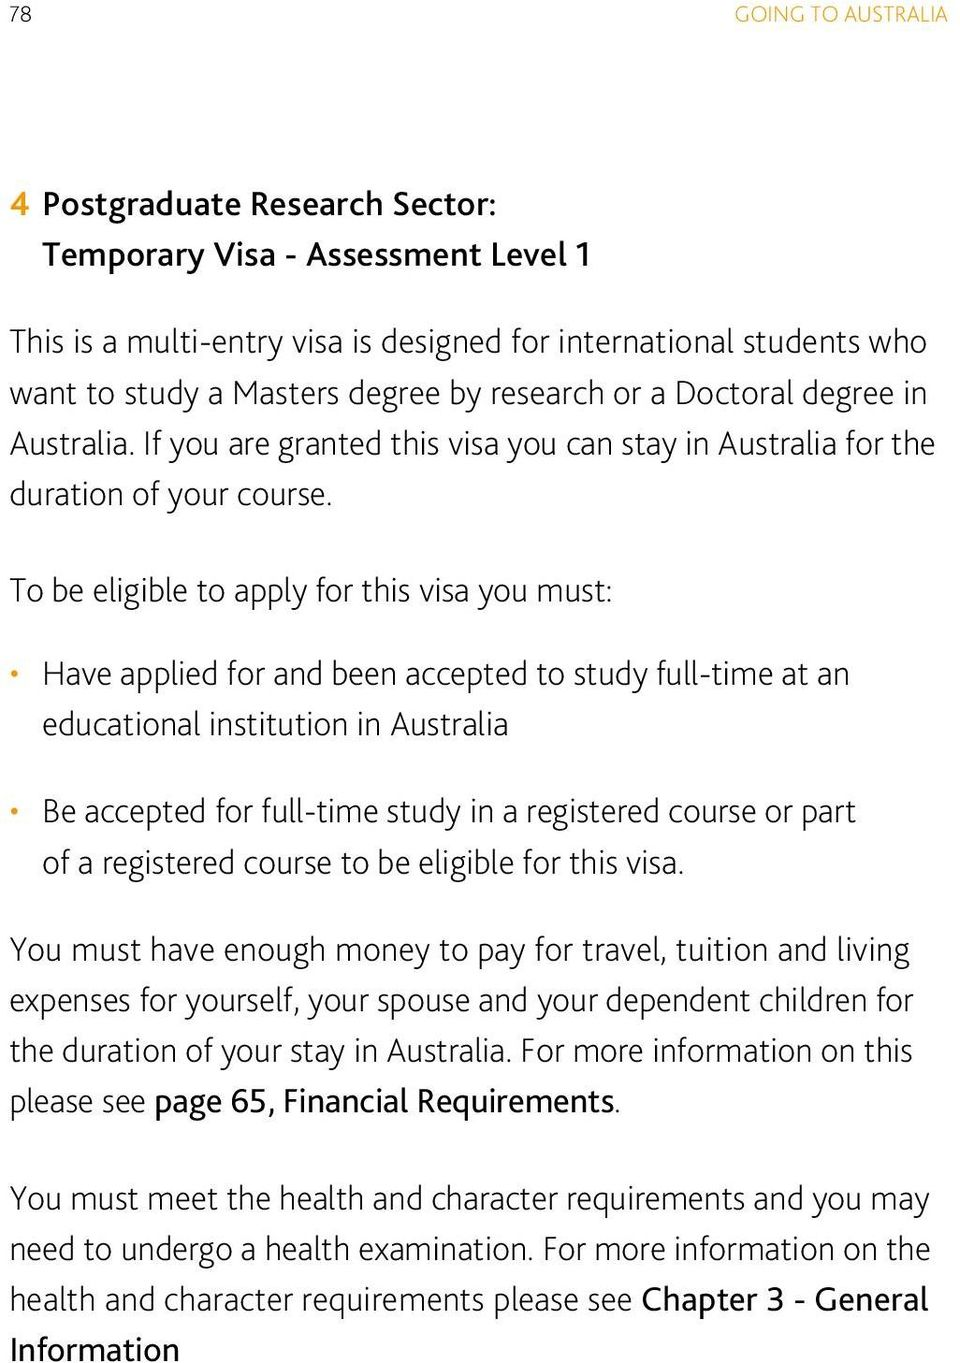 To be eligible to apply for this visa you must: Have applied for and been accepted to study full-time at an educational institution in Australia Be accepted for full-time study in a registered course